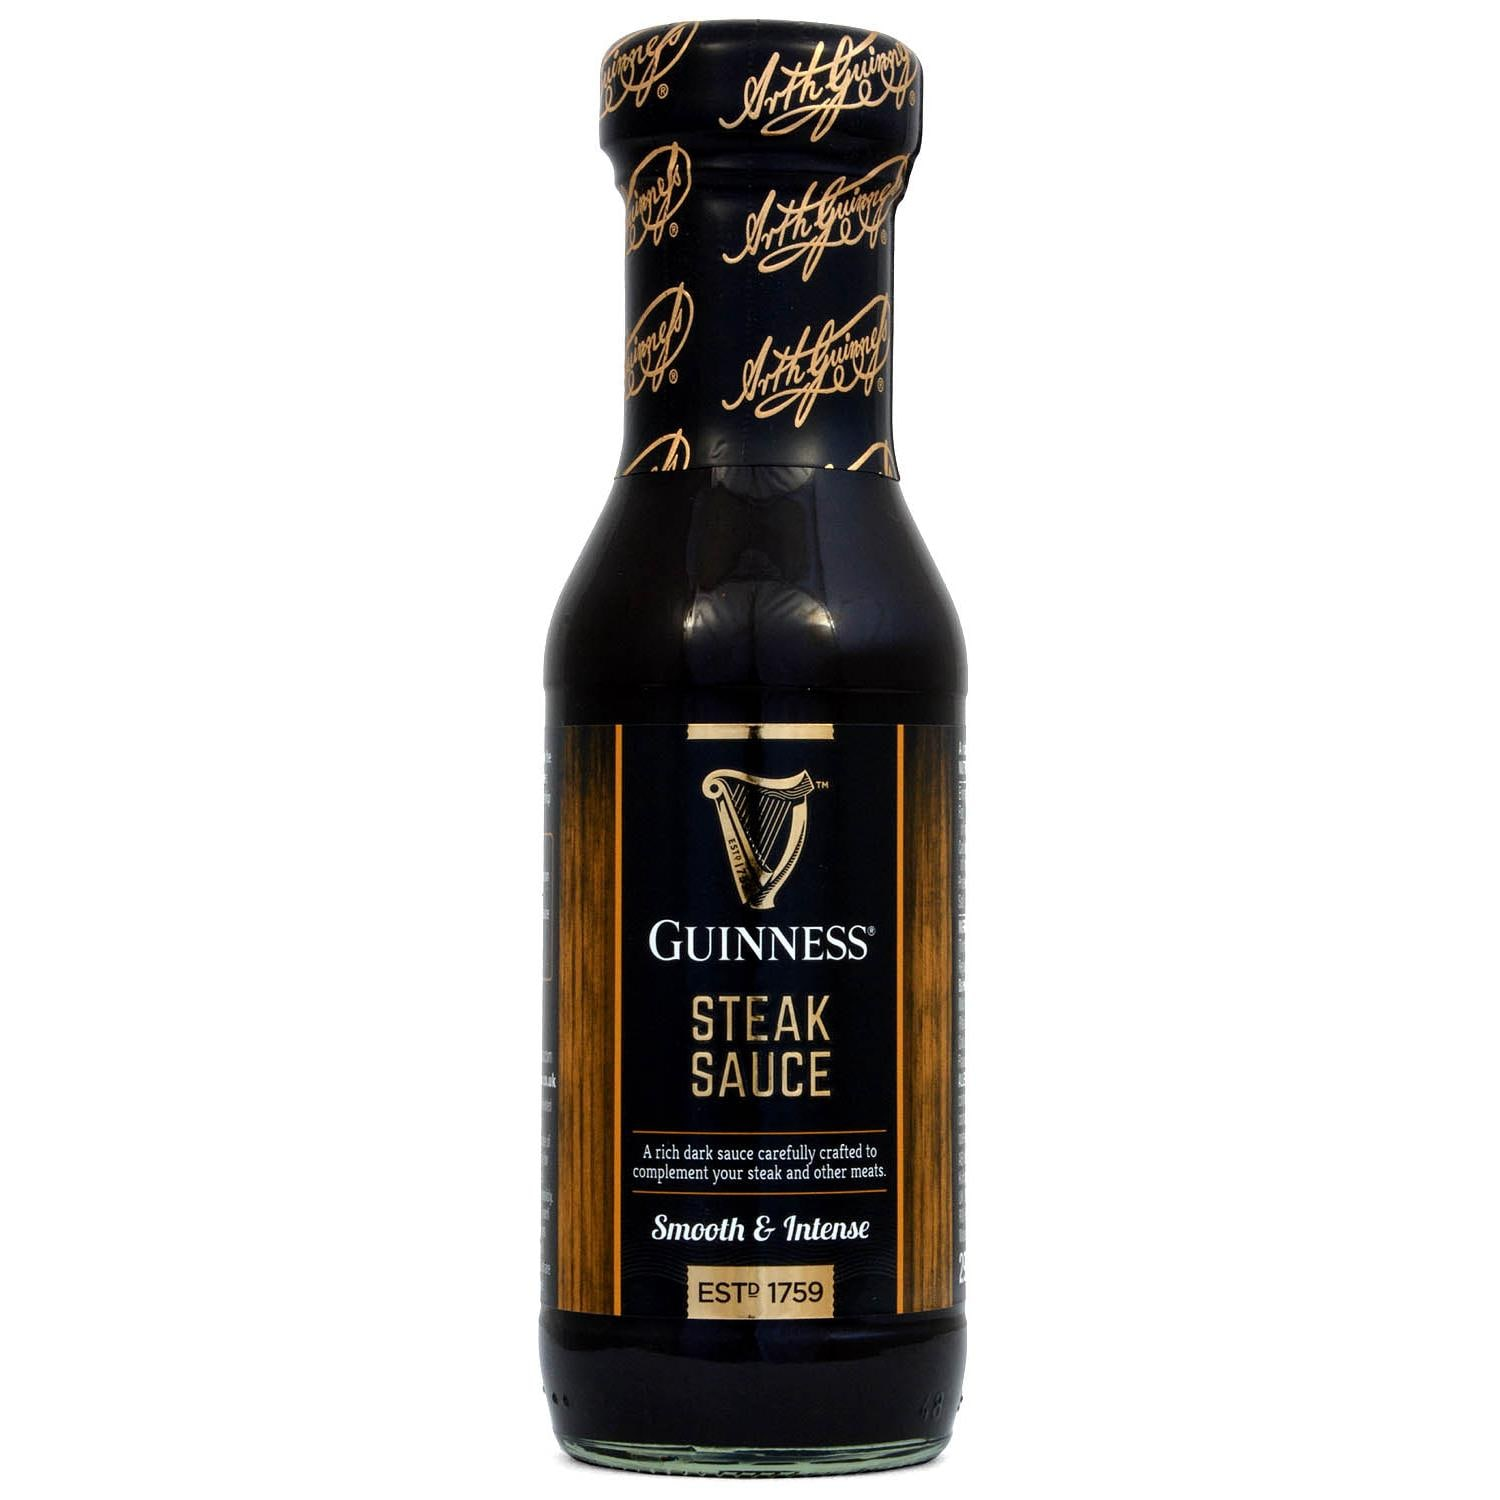 Guinness Steak Sauce Smooth & Intense 295g - Steaksauce mit Bier